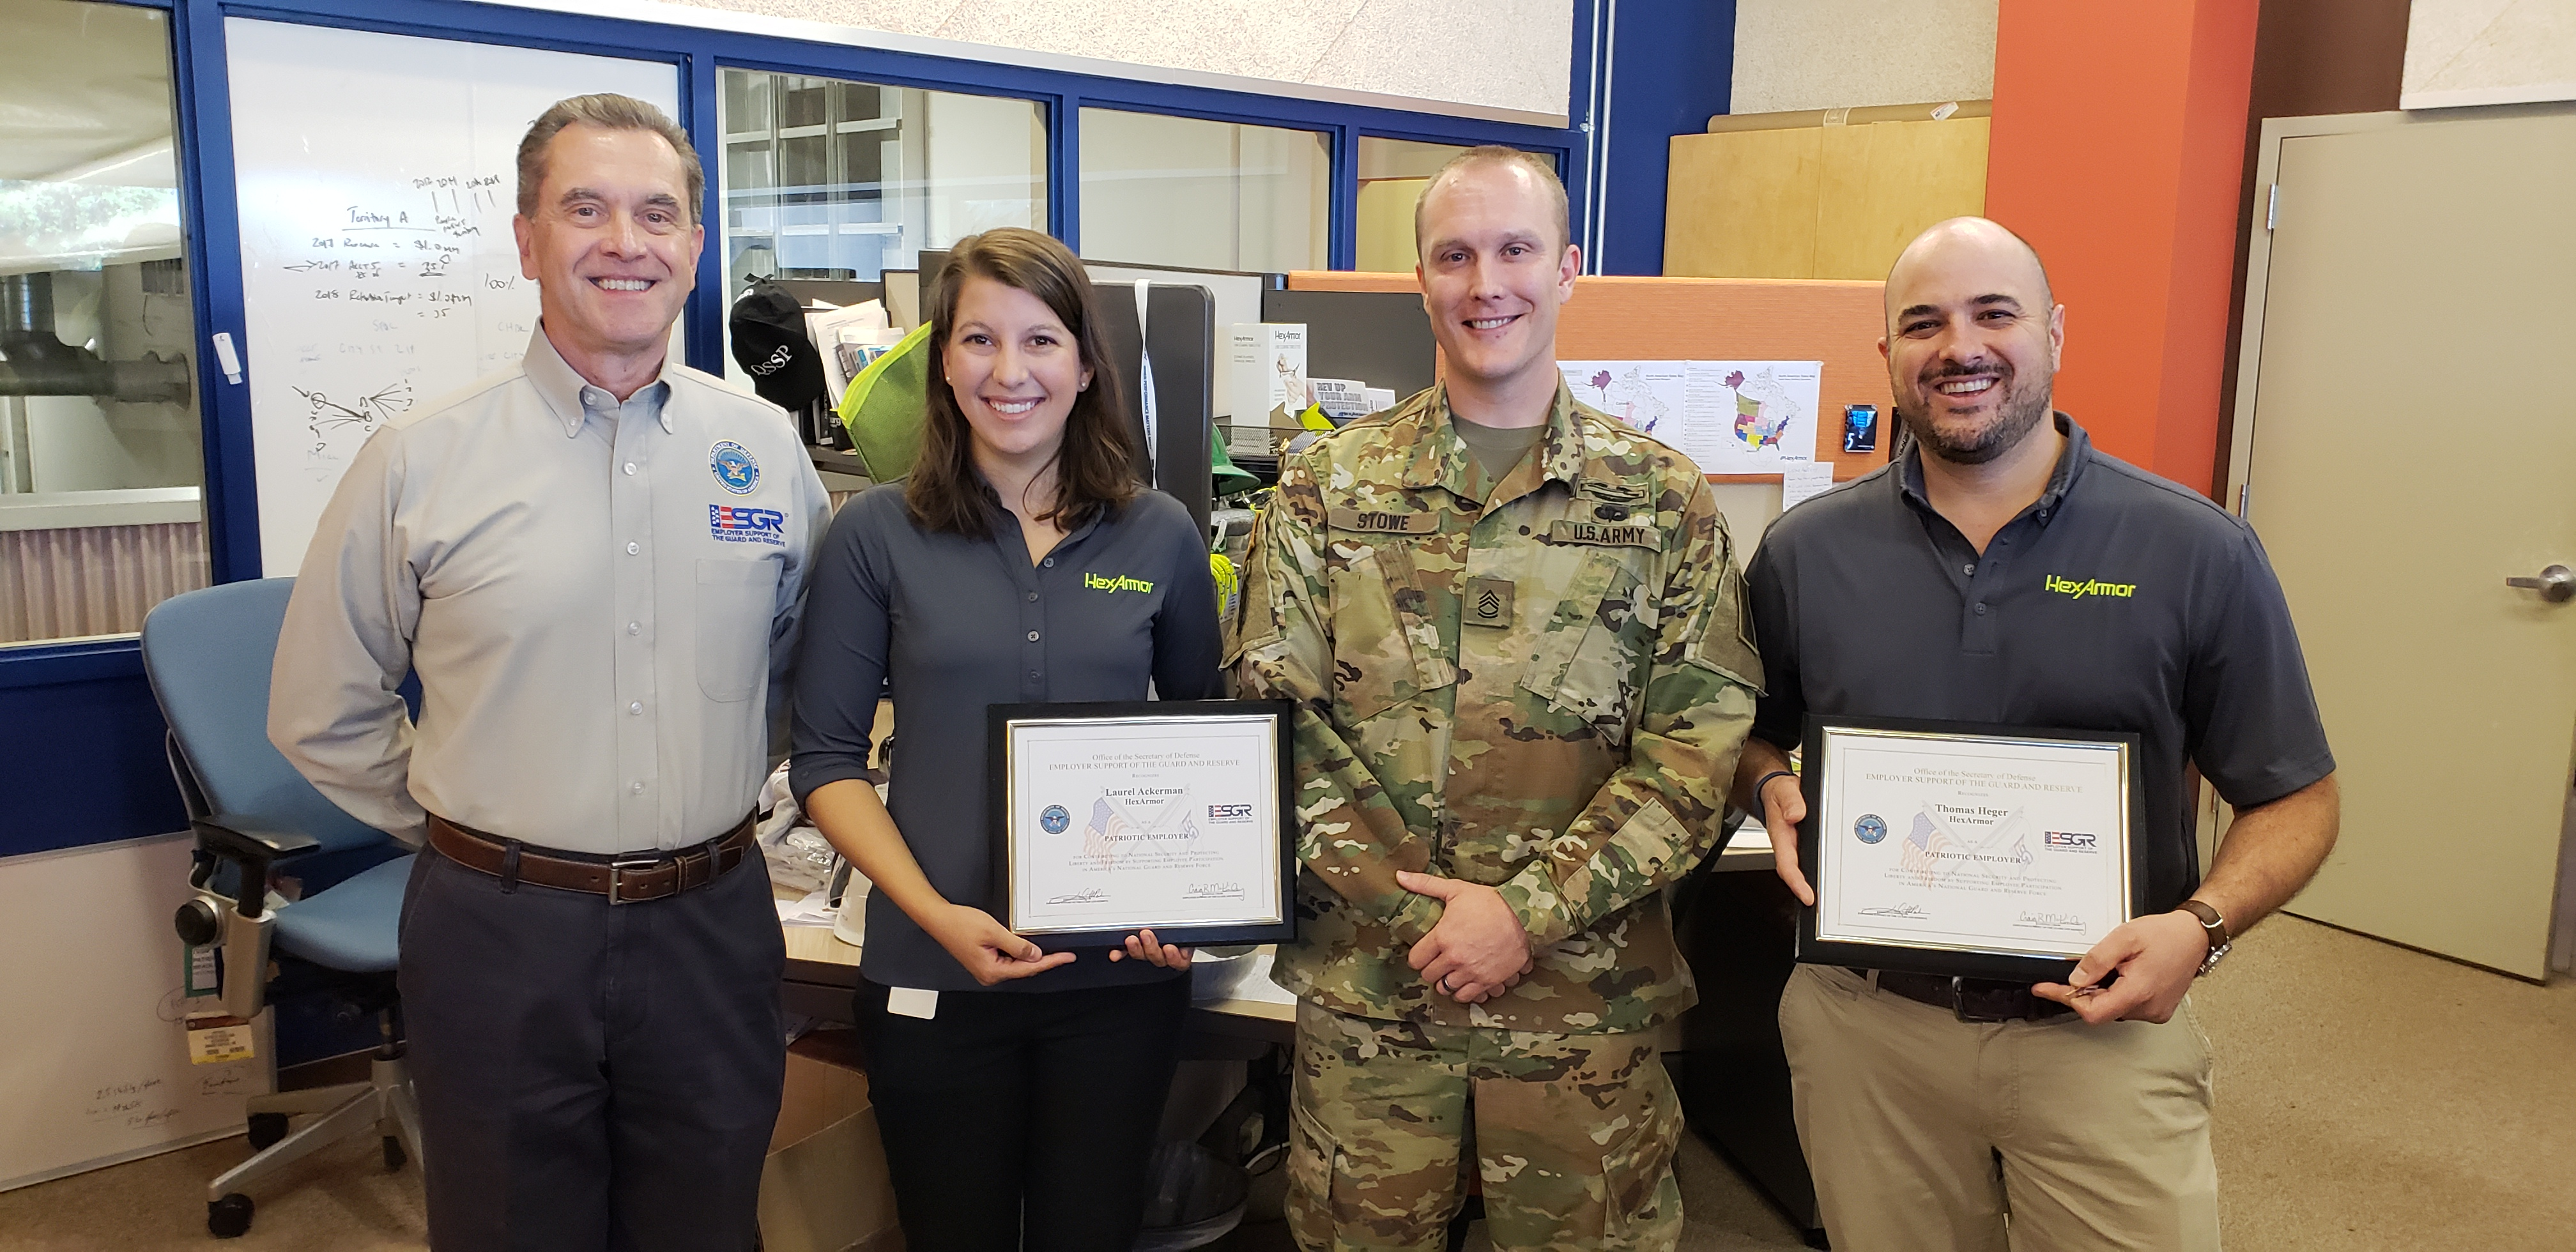 Two HexArmor Employees Honored with Patriot Award by Department of Defense Program